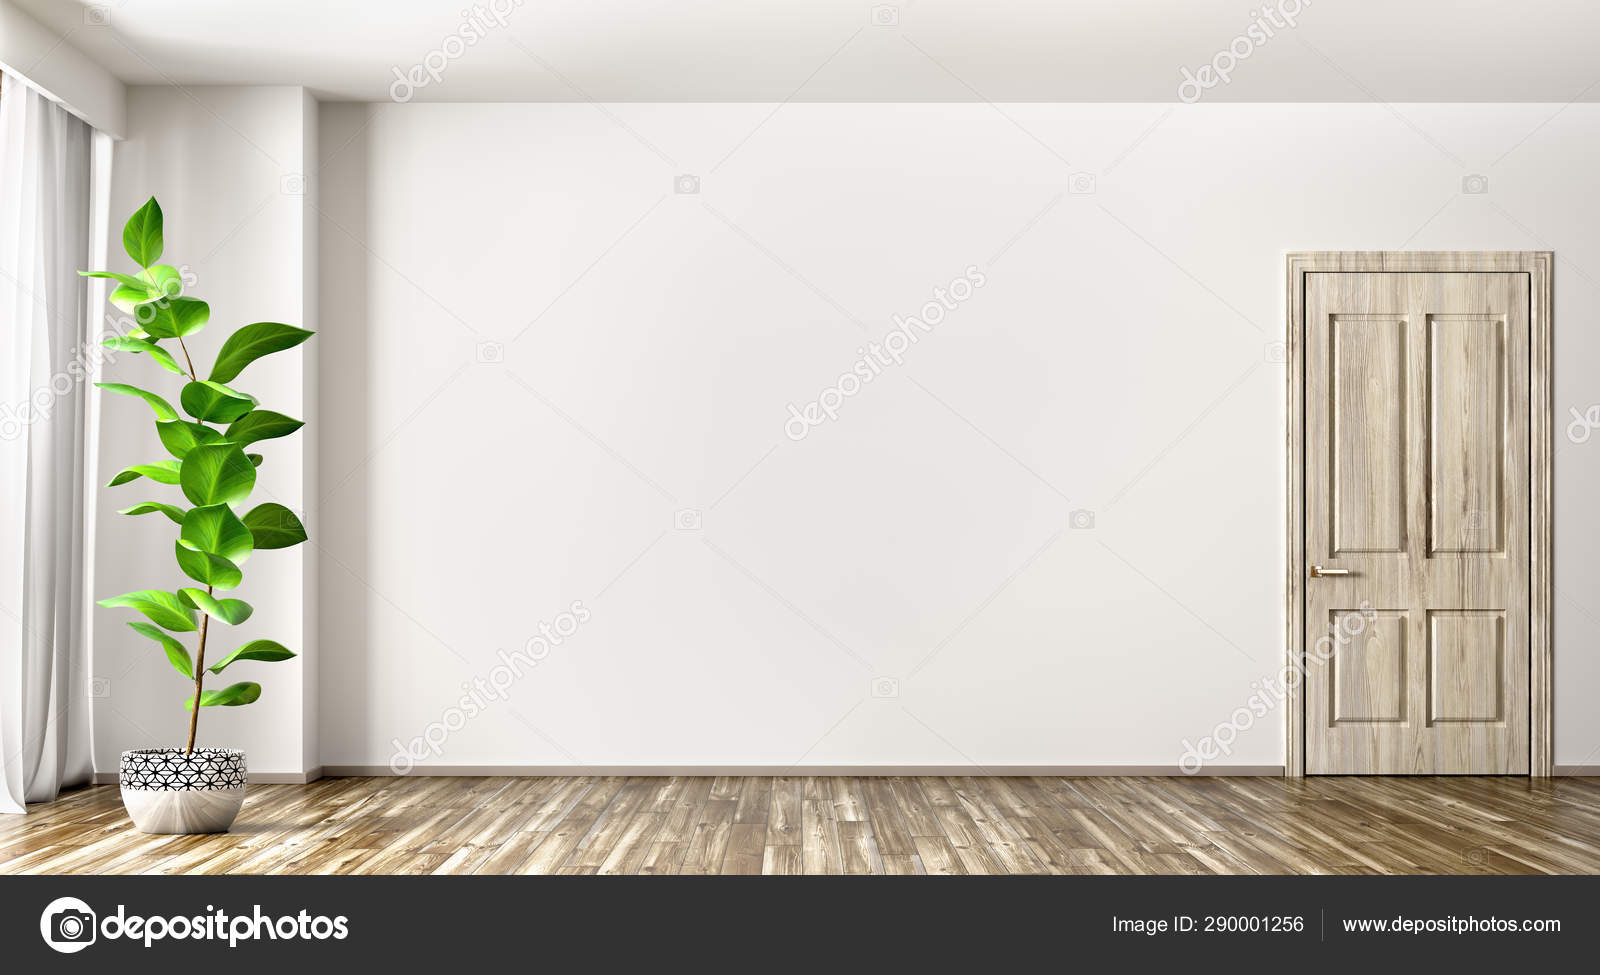 Interior Background Of Living Room With Plant And Door 3d Render Stock Photo C Scovad 290001256